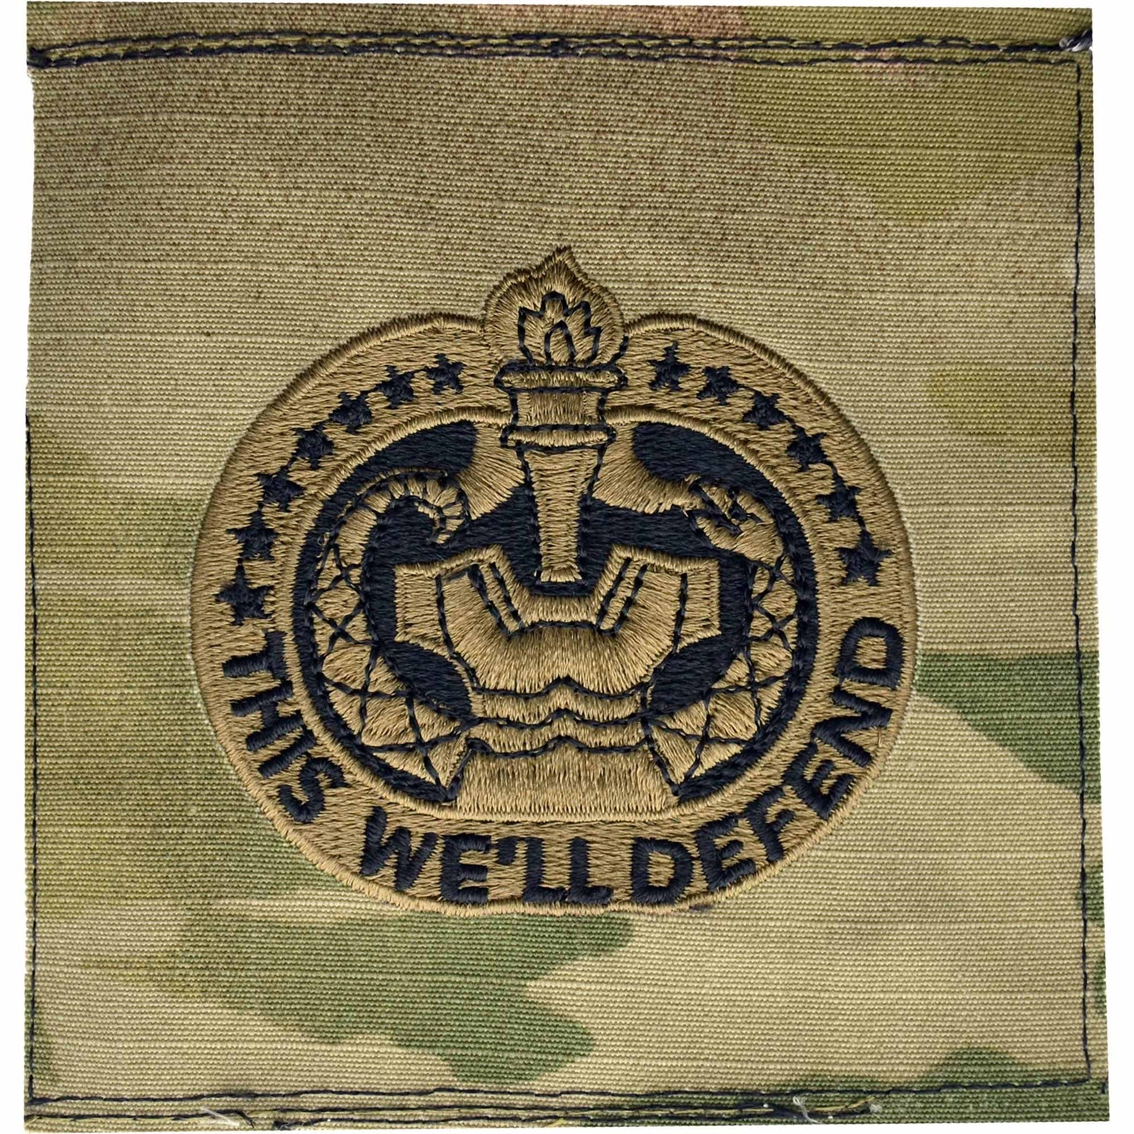 Army Drill Sergeant Badge Sew-on (ocp) | Ocp Identification